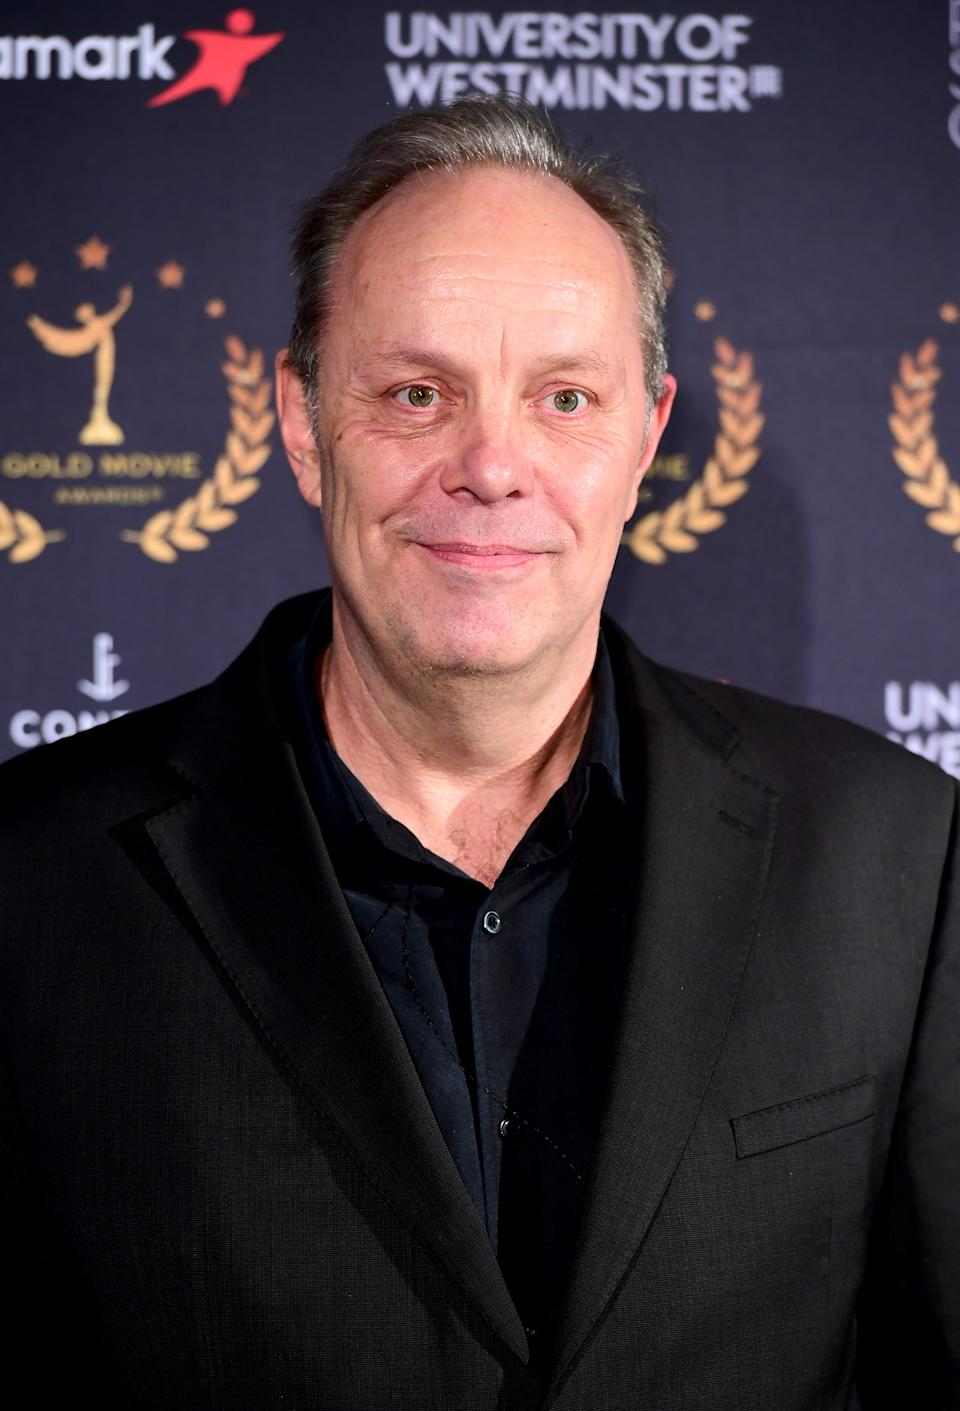 David Schaal attending the Gold Movie Awards 2020, held at Regent Street Cinema in Marylebone, London. (Photo by Ian West/PA Images via Getty Images)